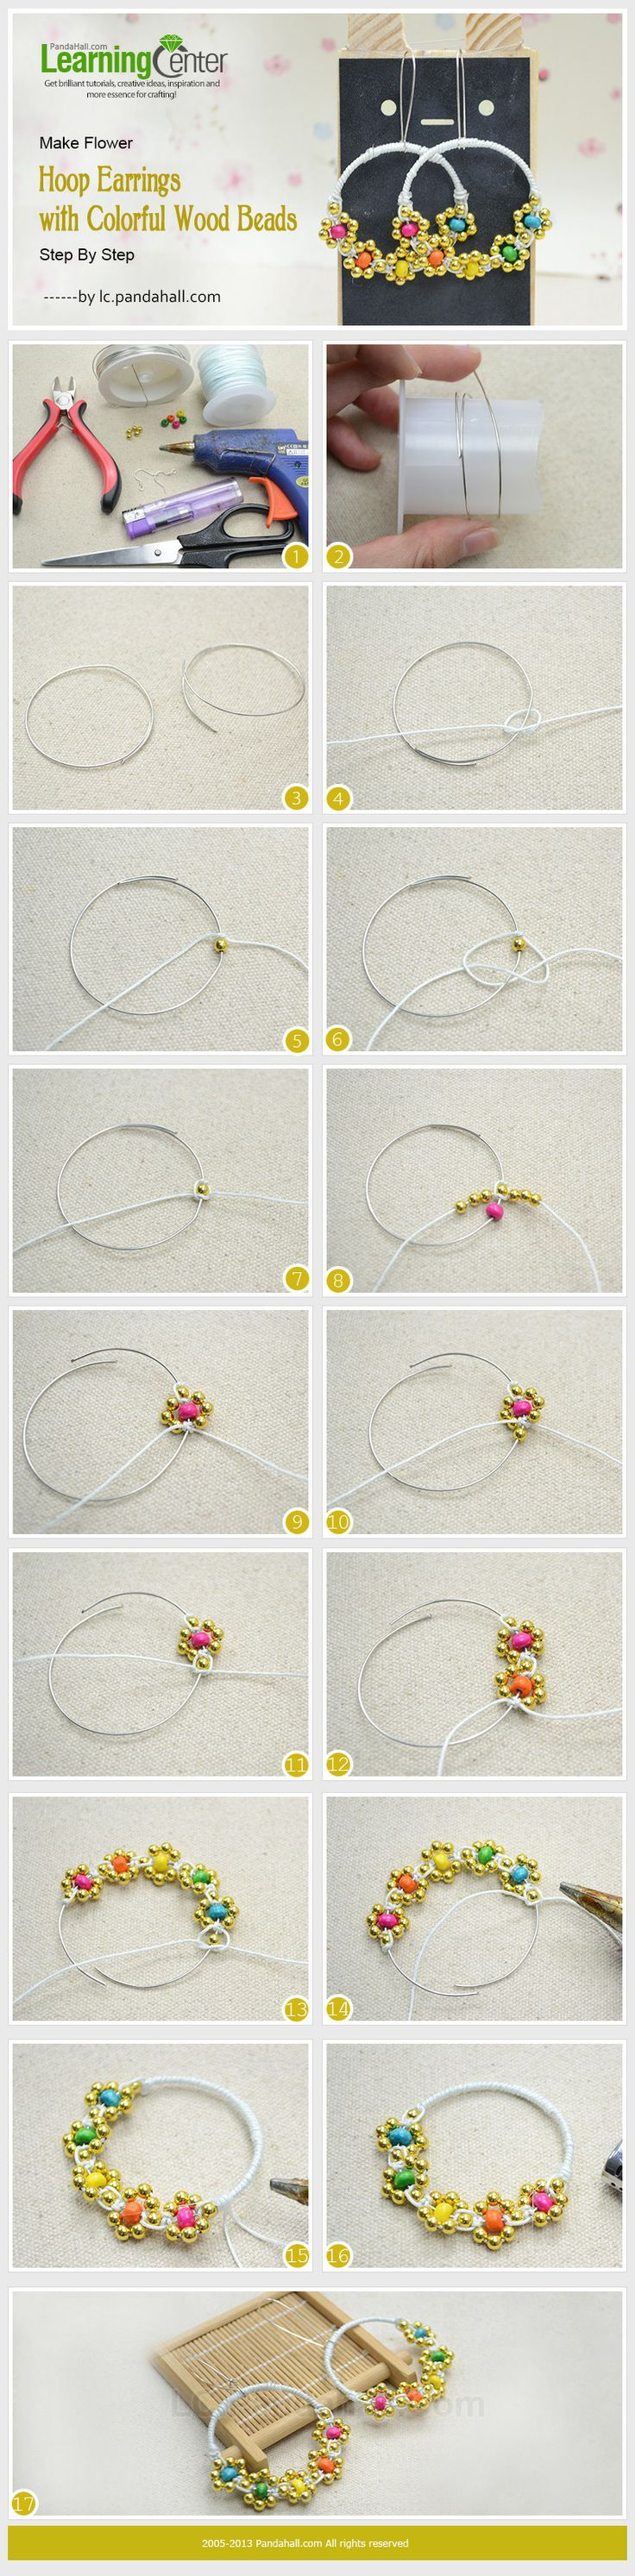 Make Flower Hoop Earrings with Colorful Wood Beads Step By Step